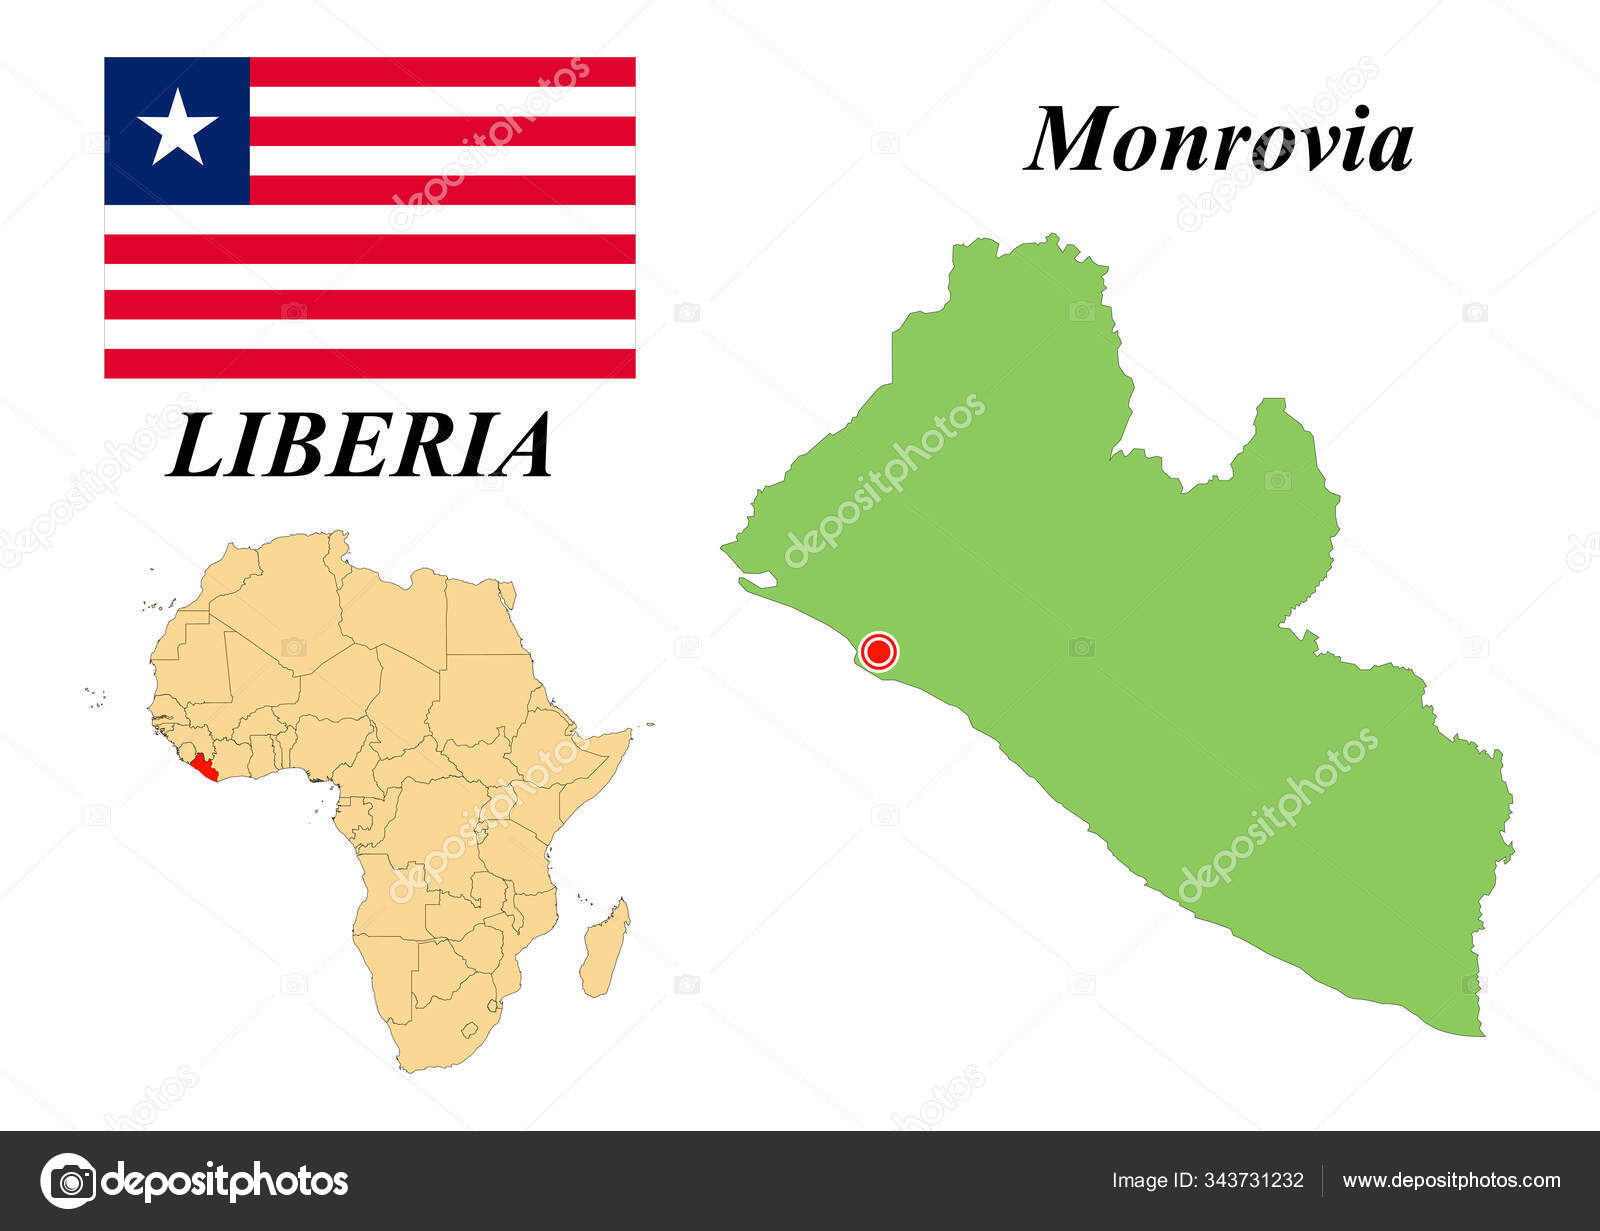 Image of: Republic Liberia Capital Monrovia Flag Liberia Map Continent Africa Country Stock Vector C Svetakuchni Mail Ru 343731232